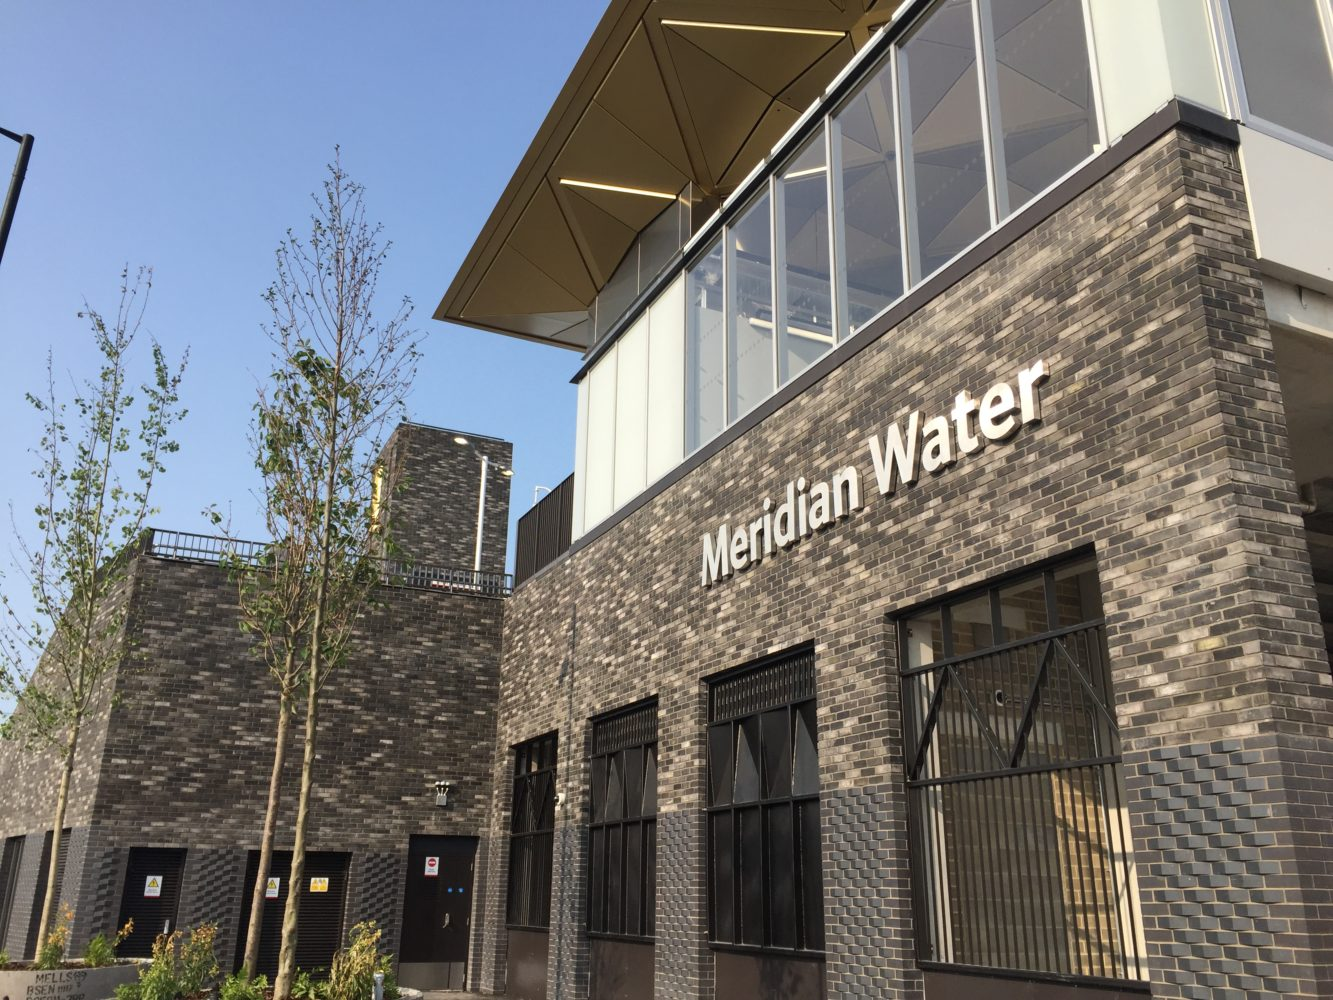 Meridian Water Station